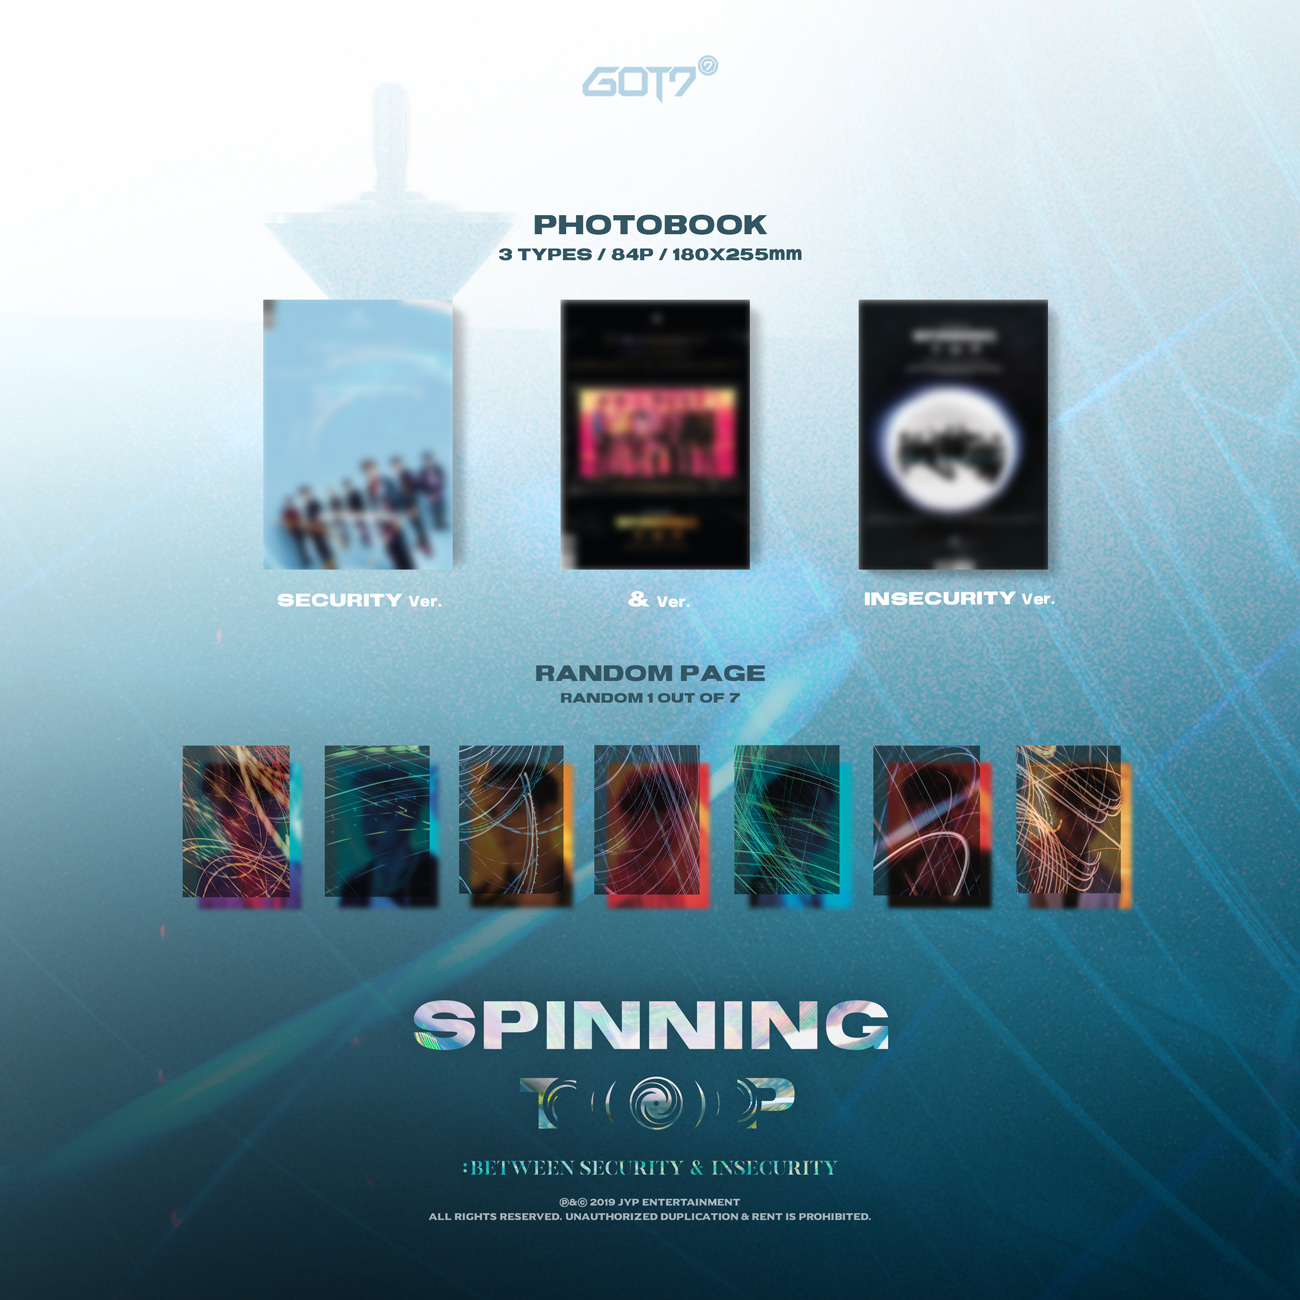 GOT7 : SPINNING TOP [Random1p] - YES24